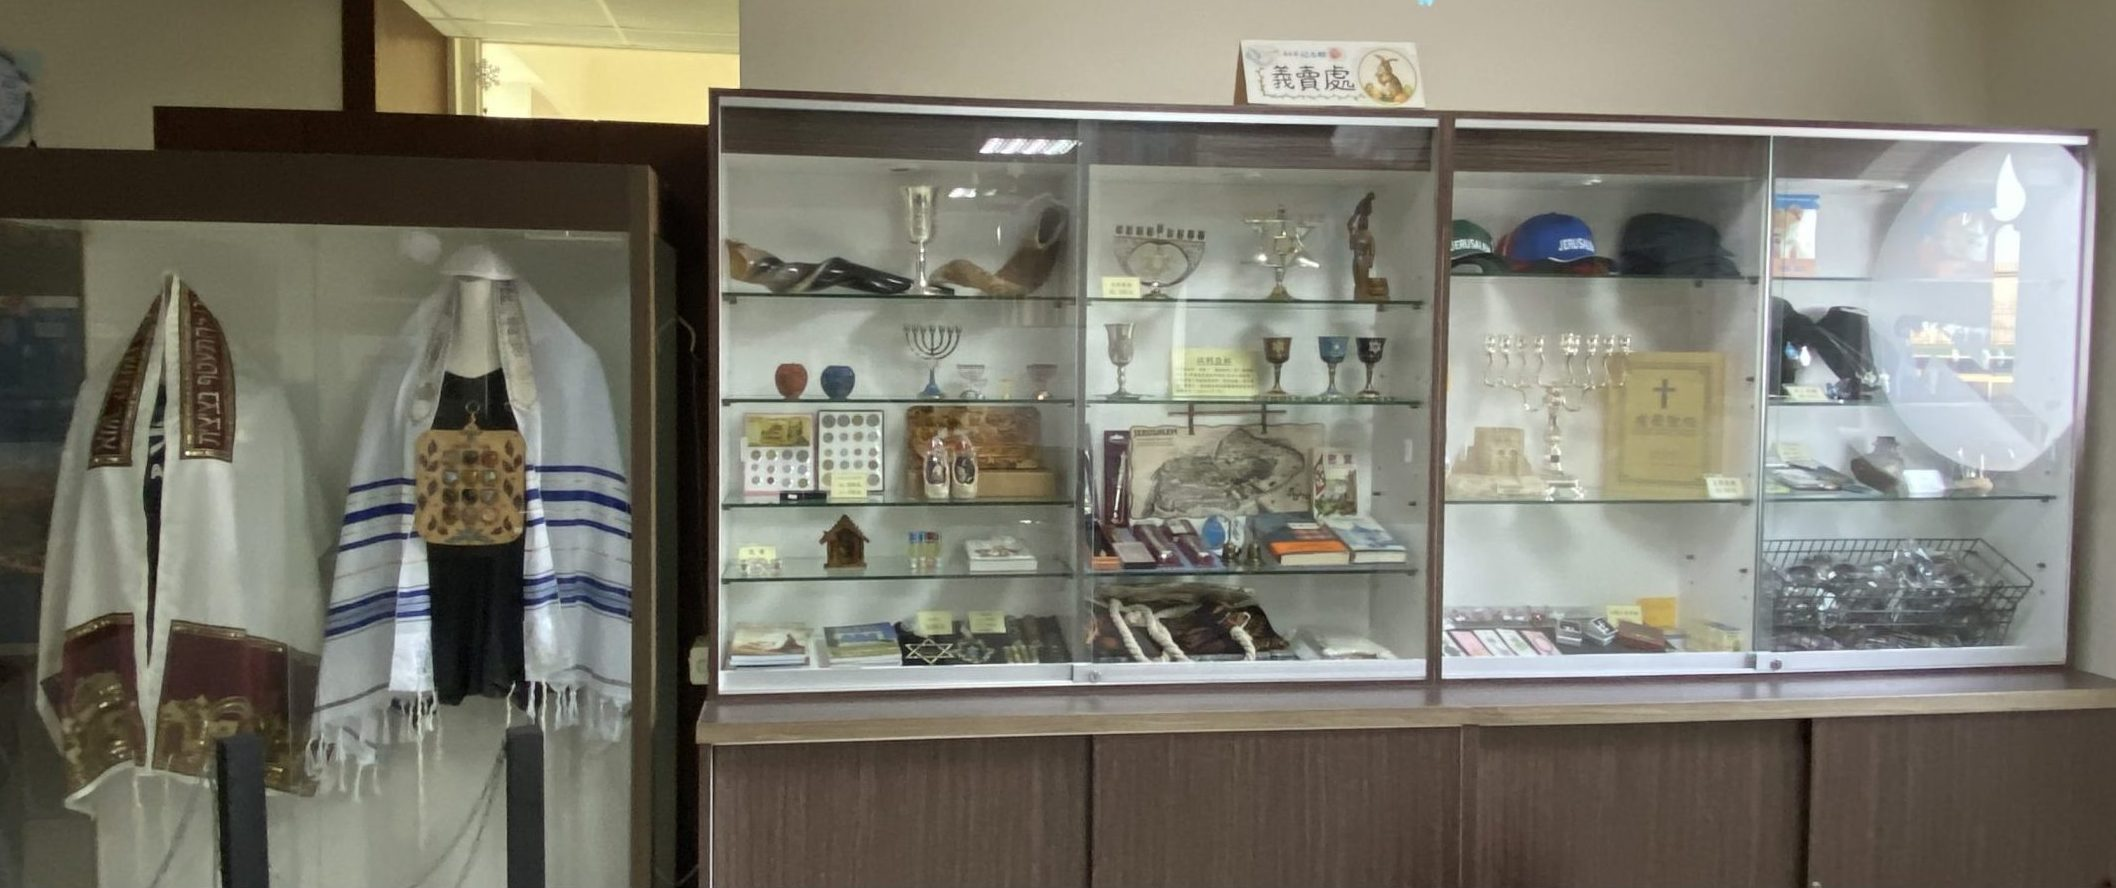 Display cabinets show different kinds of talit (prayer shawls), alongside a smaller items including a shofar (ram's horn trumpet), menorahs, kiddush cups used for wine, and books